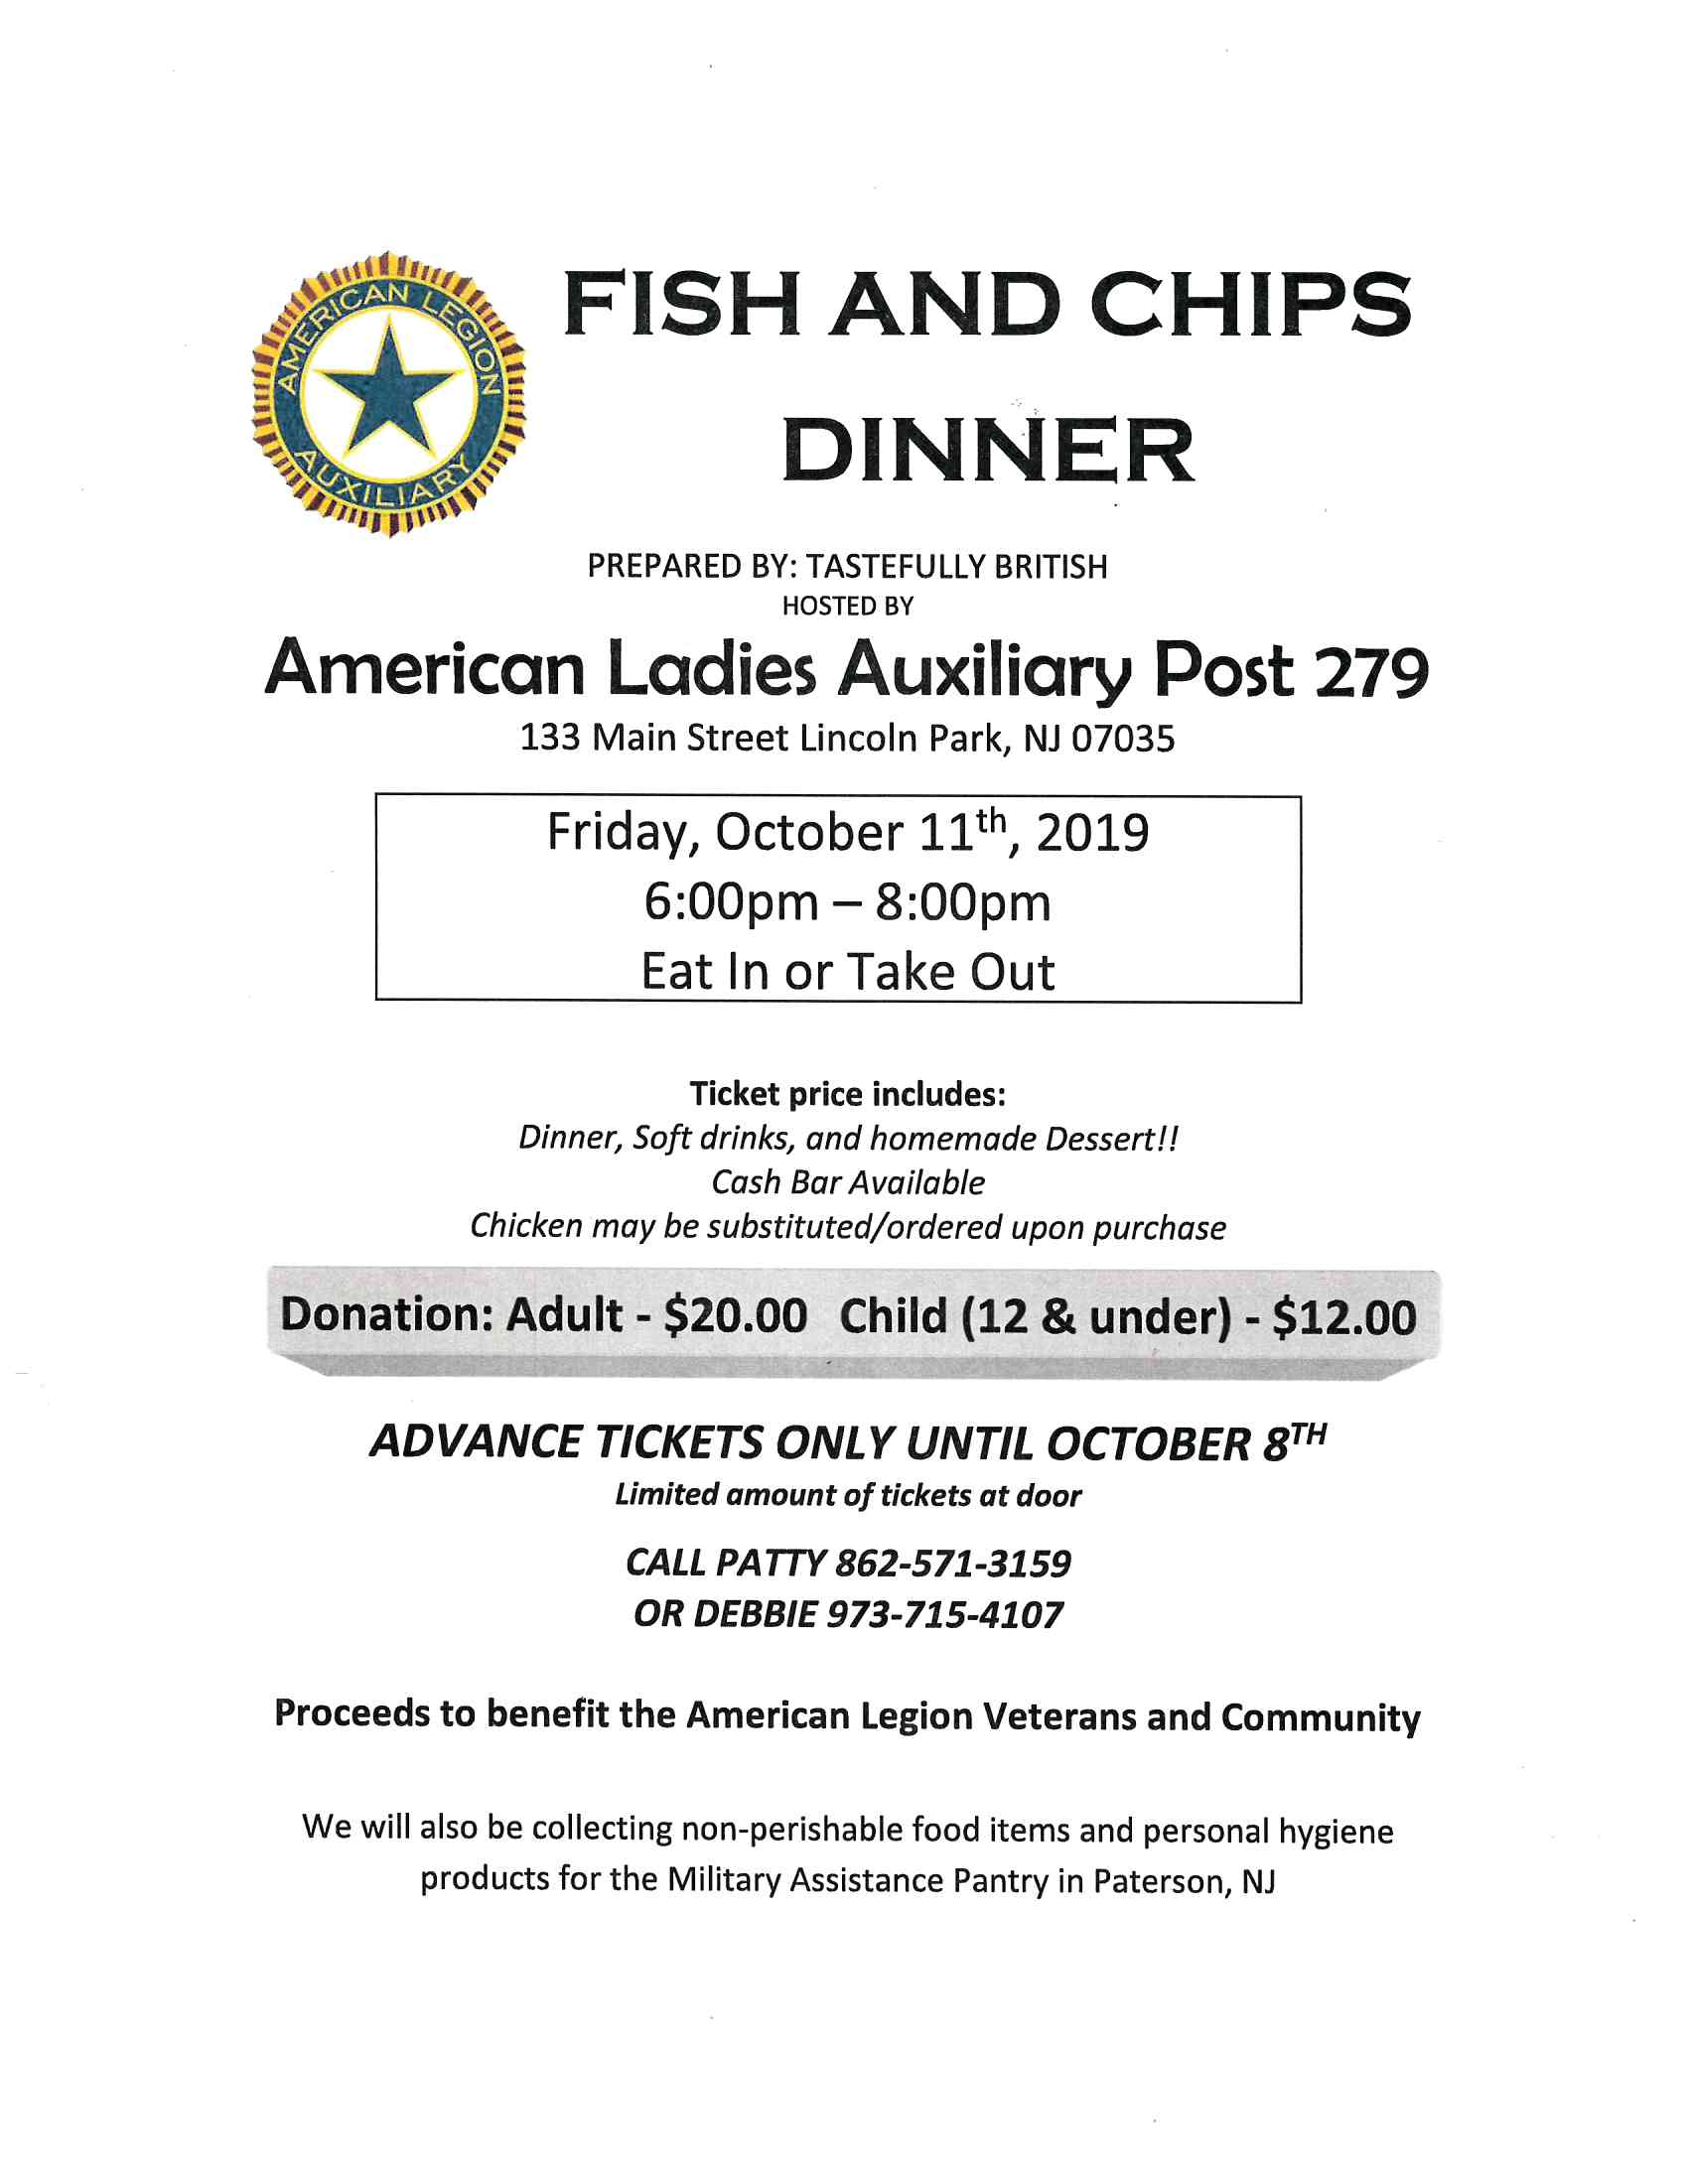 Amer Legion Fish Chips Oct 11